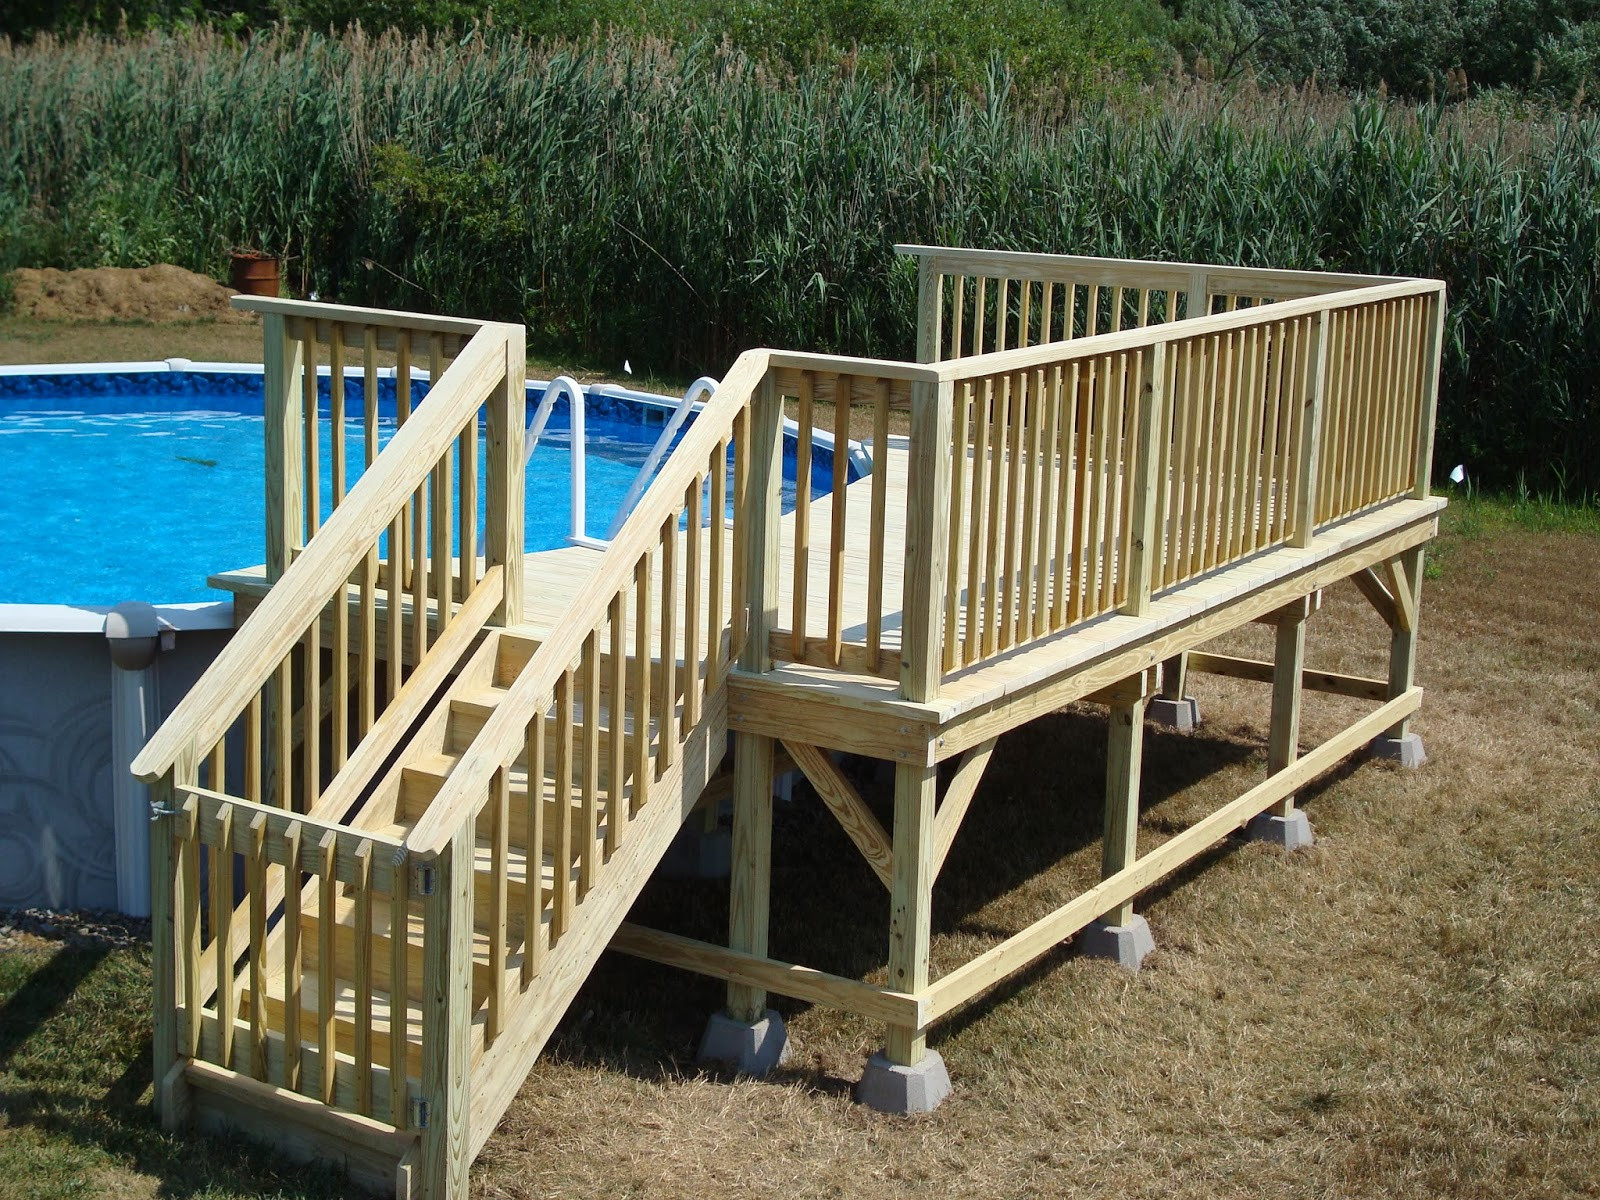 Best ideas about Free Above Ground Pool Deck Plans . Save or Pin currydecks Now.